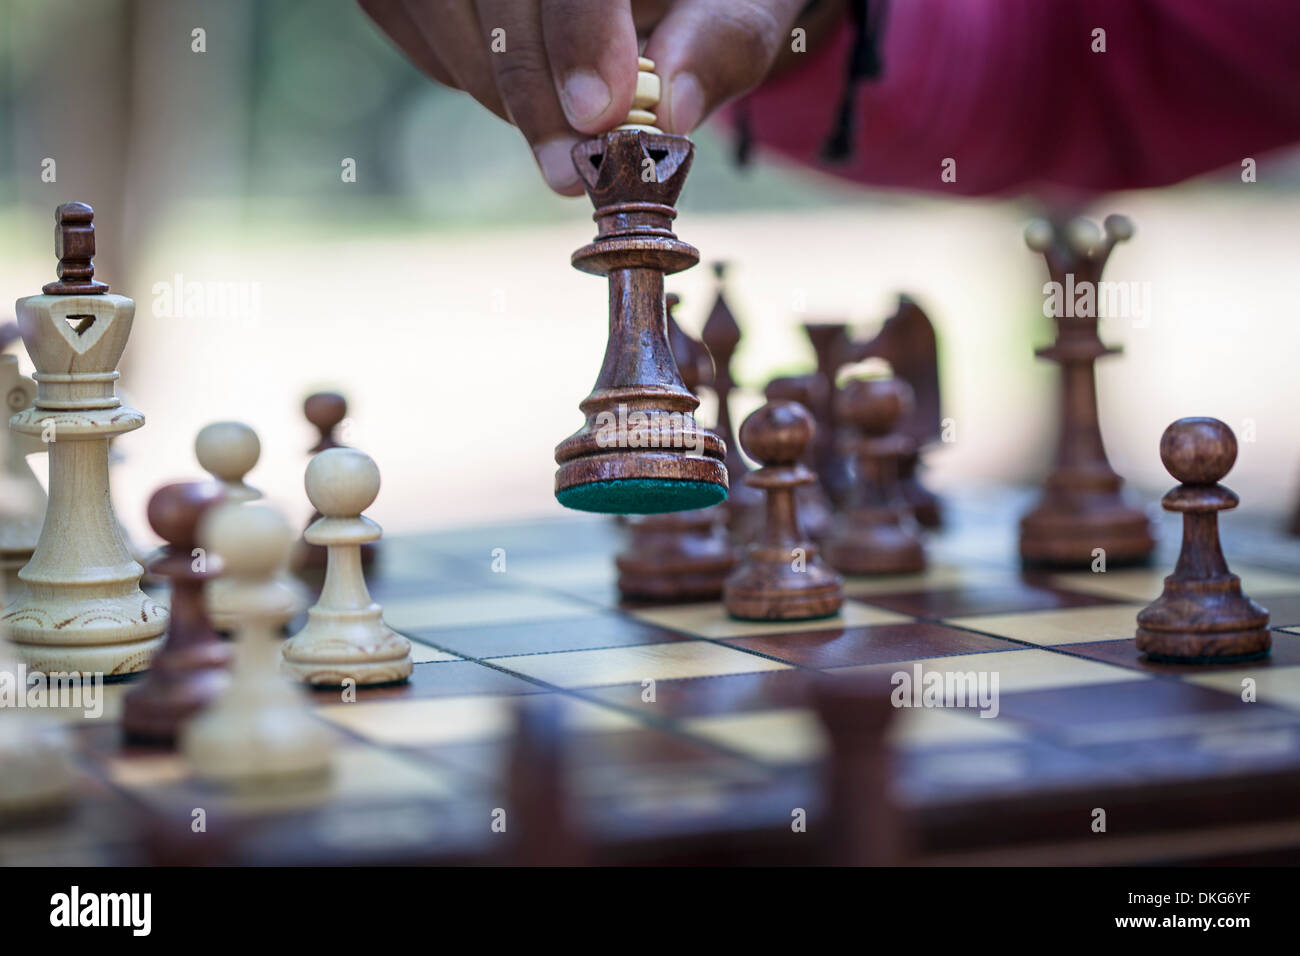 Hand moving chess piece on board, close up - Stock Image